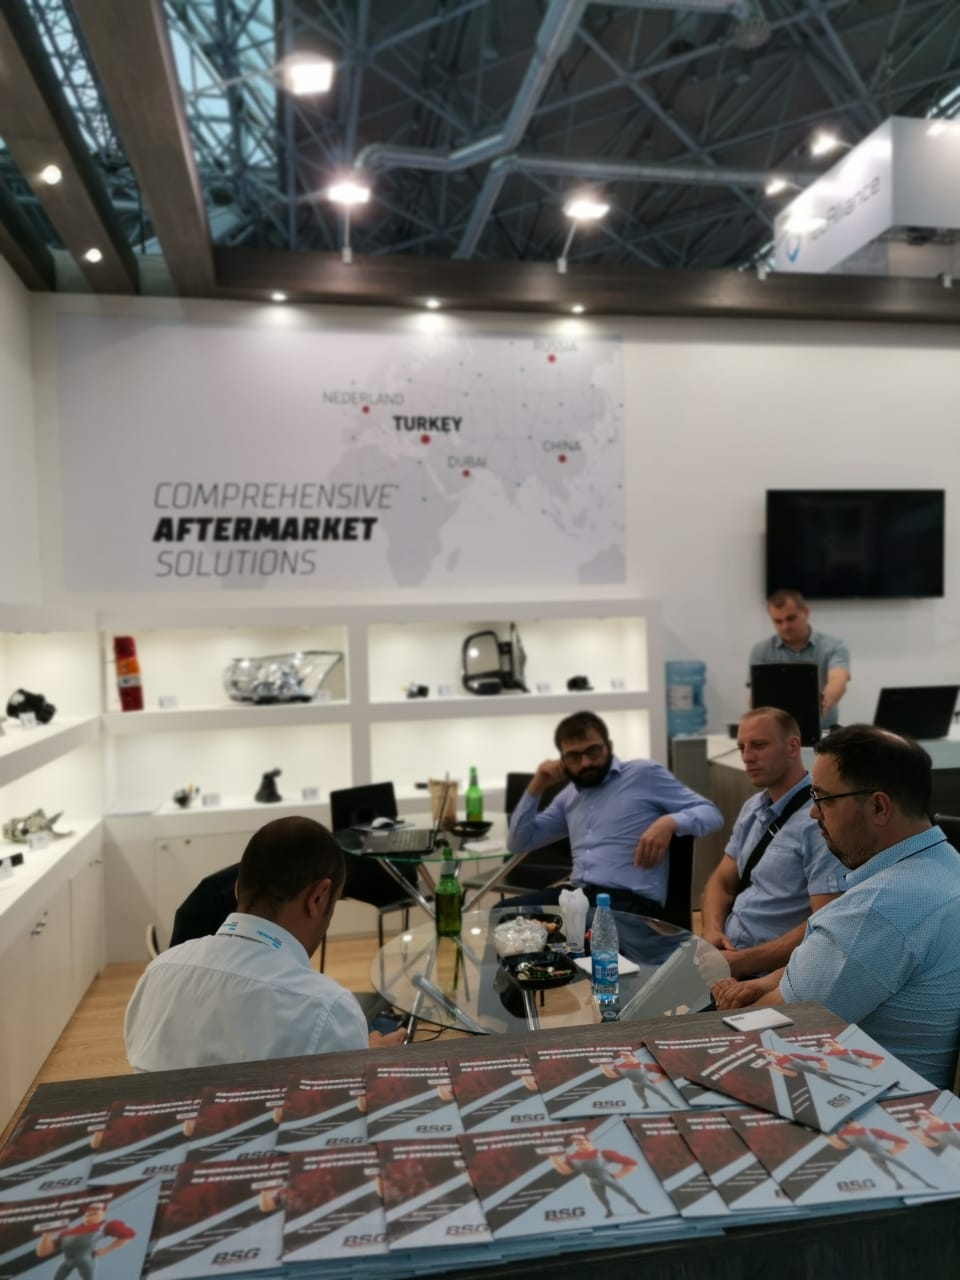 <p>BSG Auto Parts, one of the Turkey's leading aftermarket parts brands joined the 13th. Automechanika Moscow which is held on 26 to 29 August 2019. This is the biggest trade expo in the CIS and Russian region.</p>  <p>Approximately 30,000 people from all over the world visited Russia's most important automotive supplier industry expo in Russia. As one of the biggest exhibitors, BSG came together with its current and potential business partners, as a high quality parts supplier for automobiles and light commercial vehicles, including accessory, equipment and other related parts.</p>